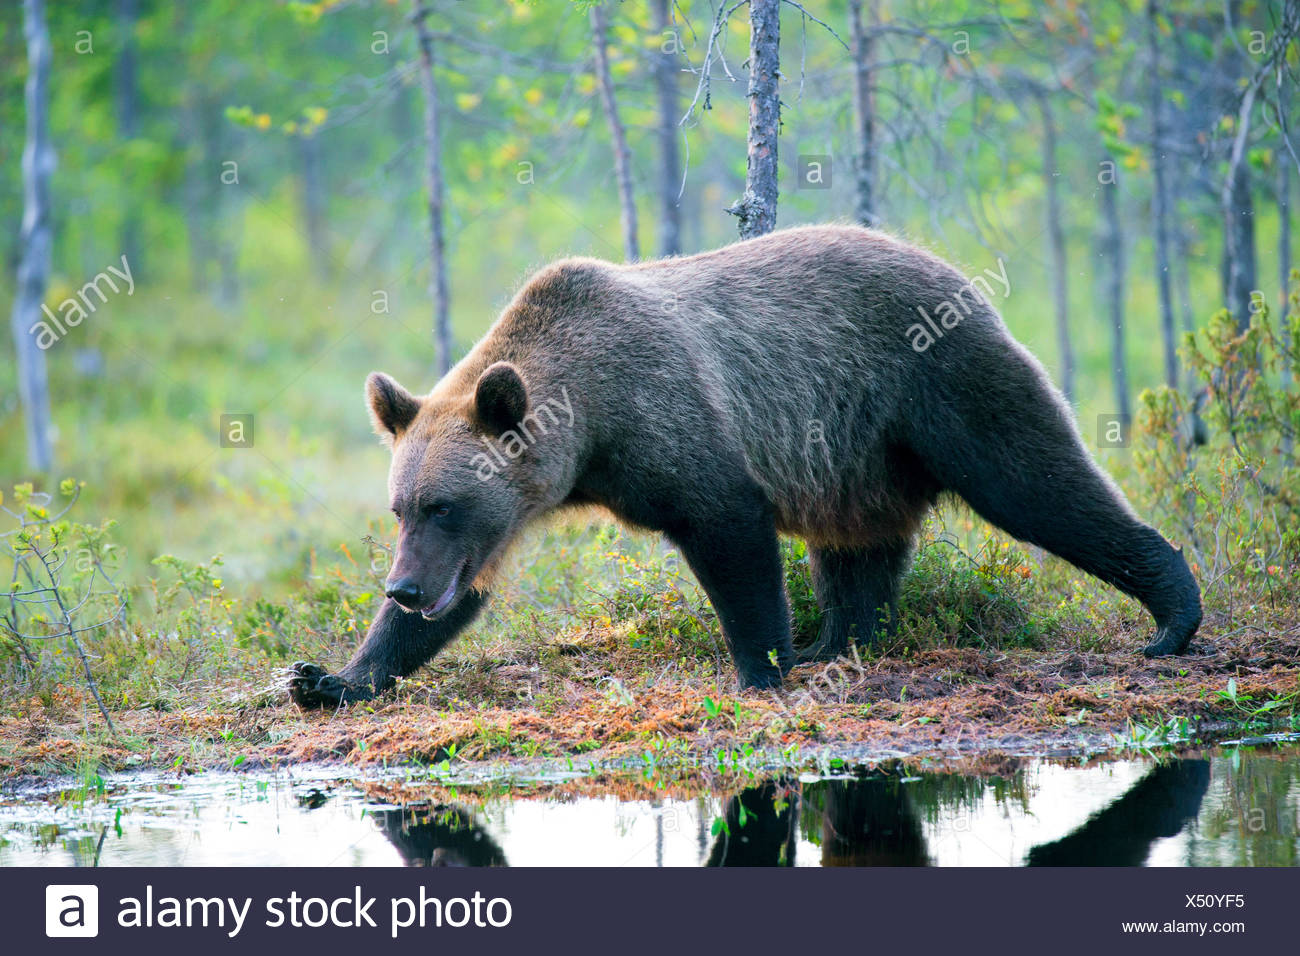 European brown bear (Ursus arctos arctos), walking on the lakefront in a forest, Finland, Kajaani Region Kuhmo, Kuikka - Stock Image